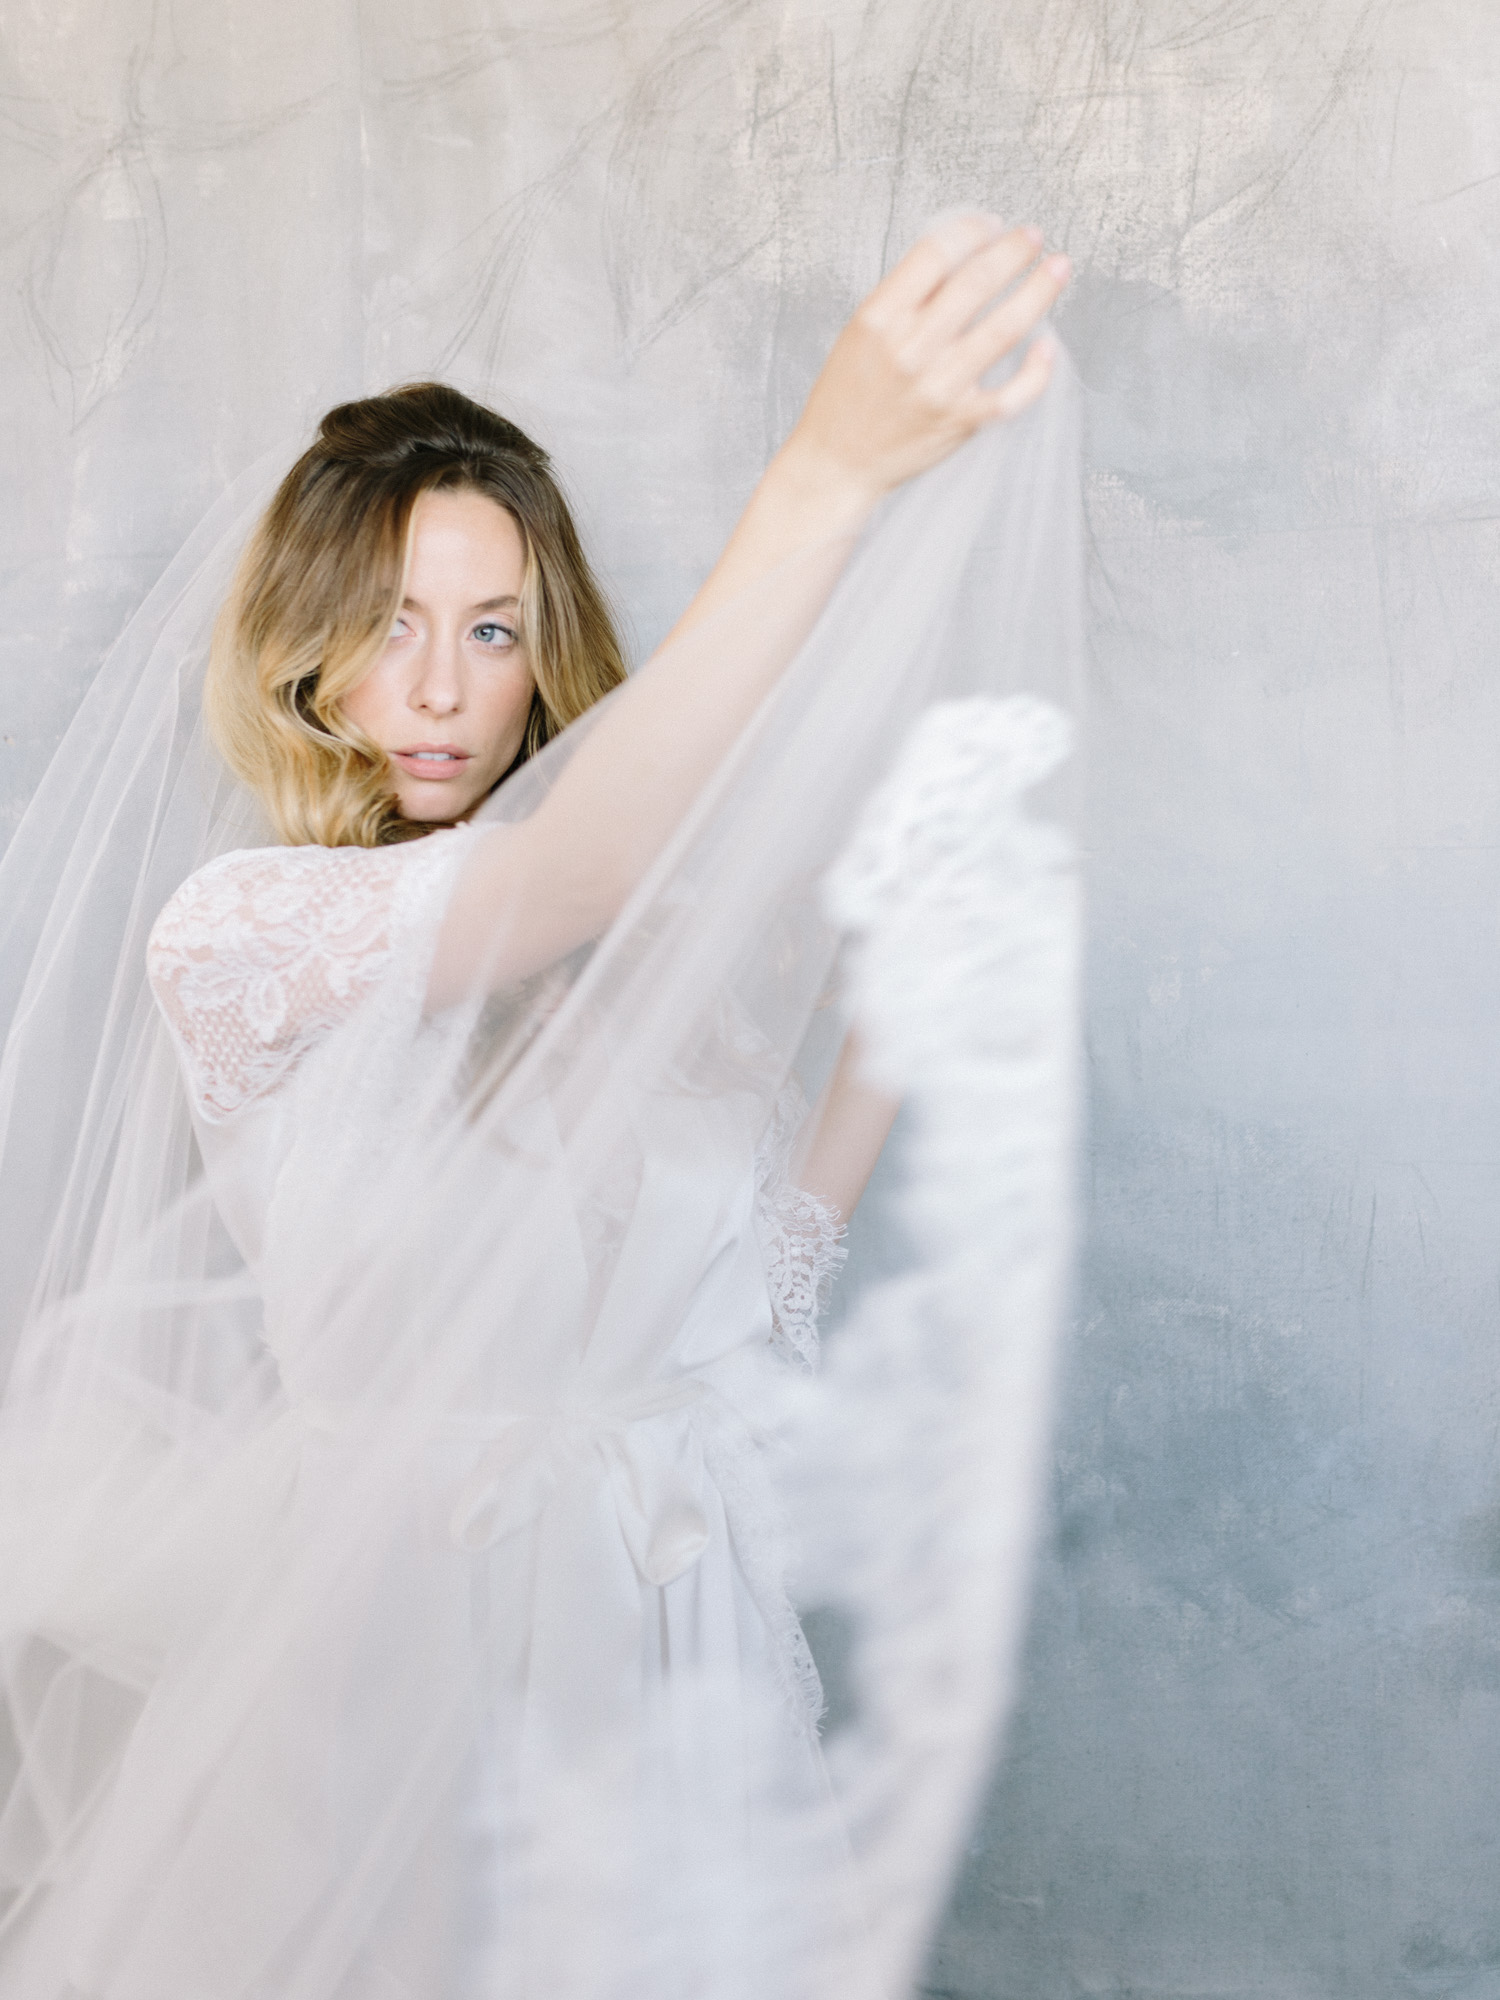 A bride wearing a Girl and A Serious Dream cathedral veil and white lace robe adjusts her veil